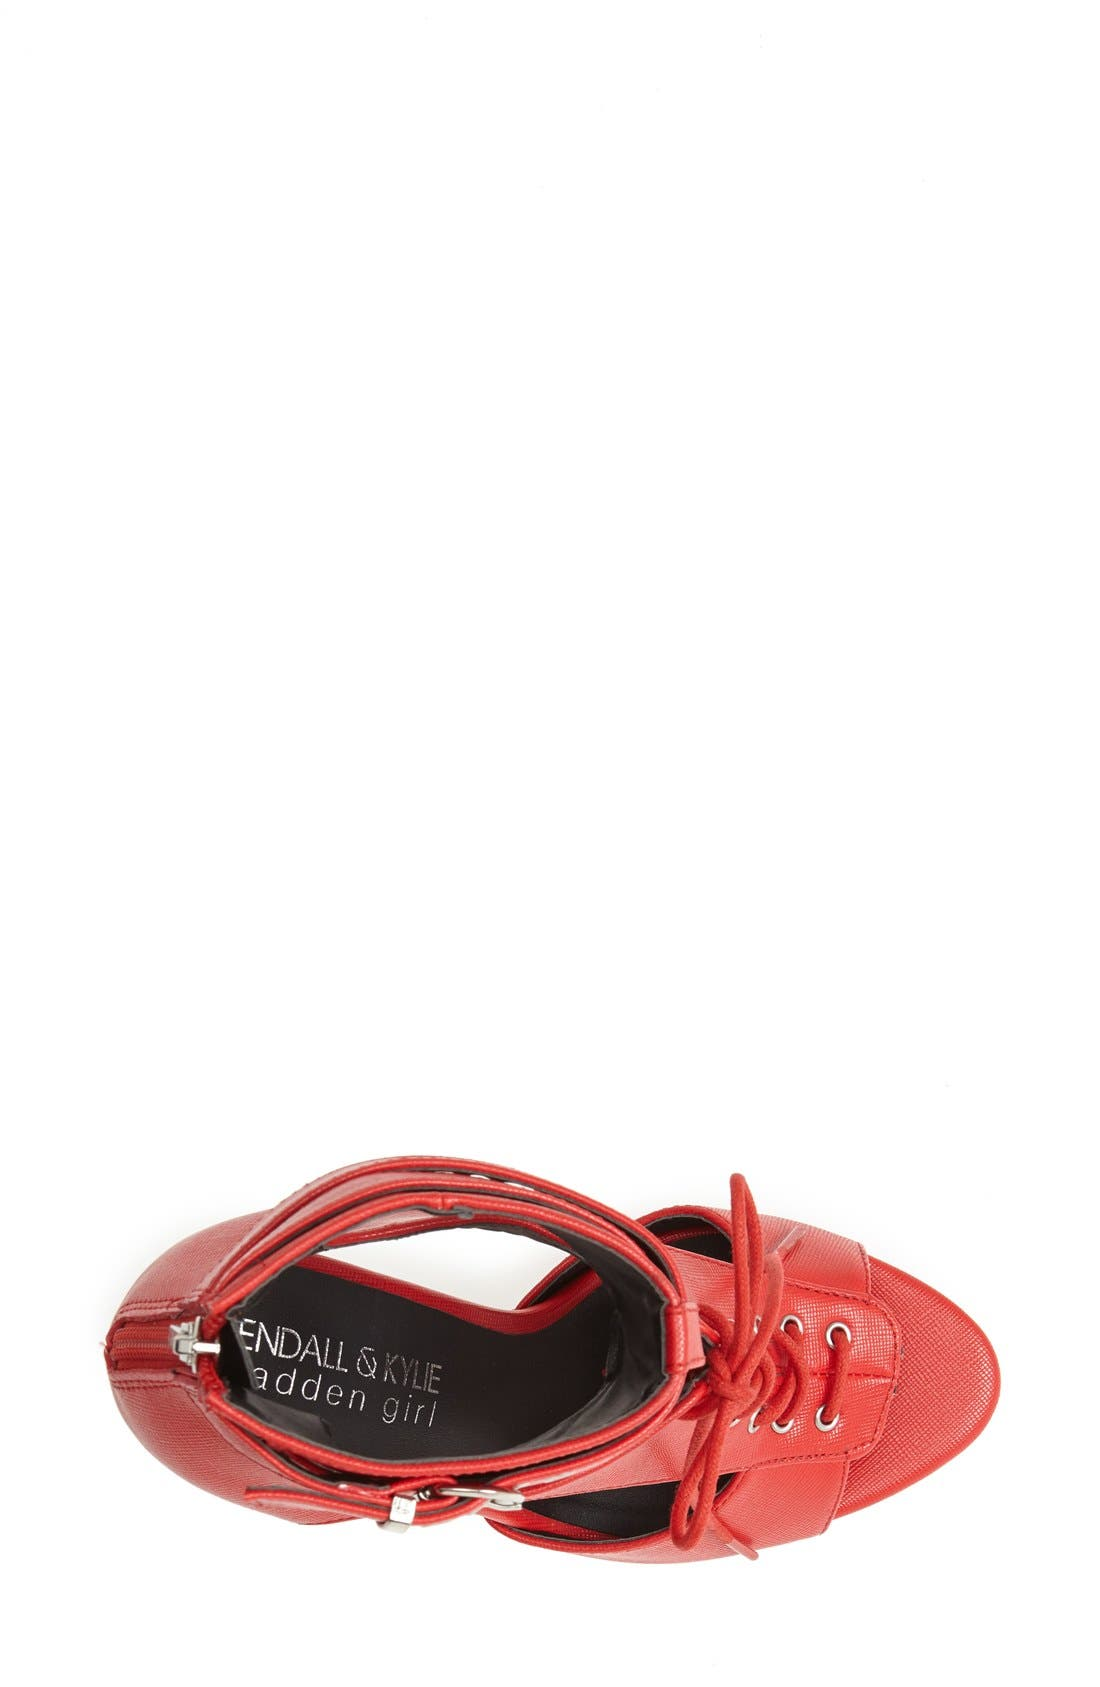 Alternate Image 3  - KENDALL + KYLIE Madden Girl 'Diice' Ankle Cuff Sandal (Women)